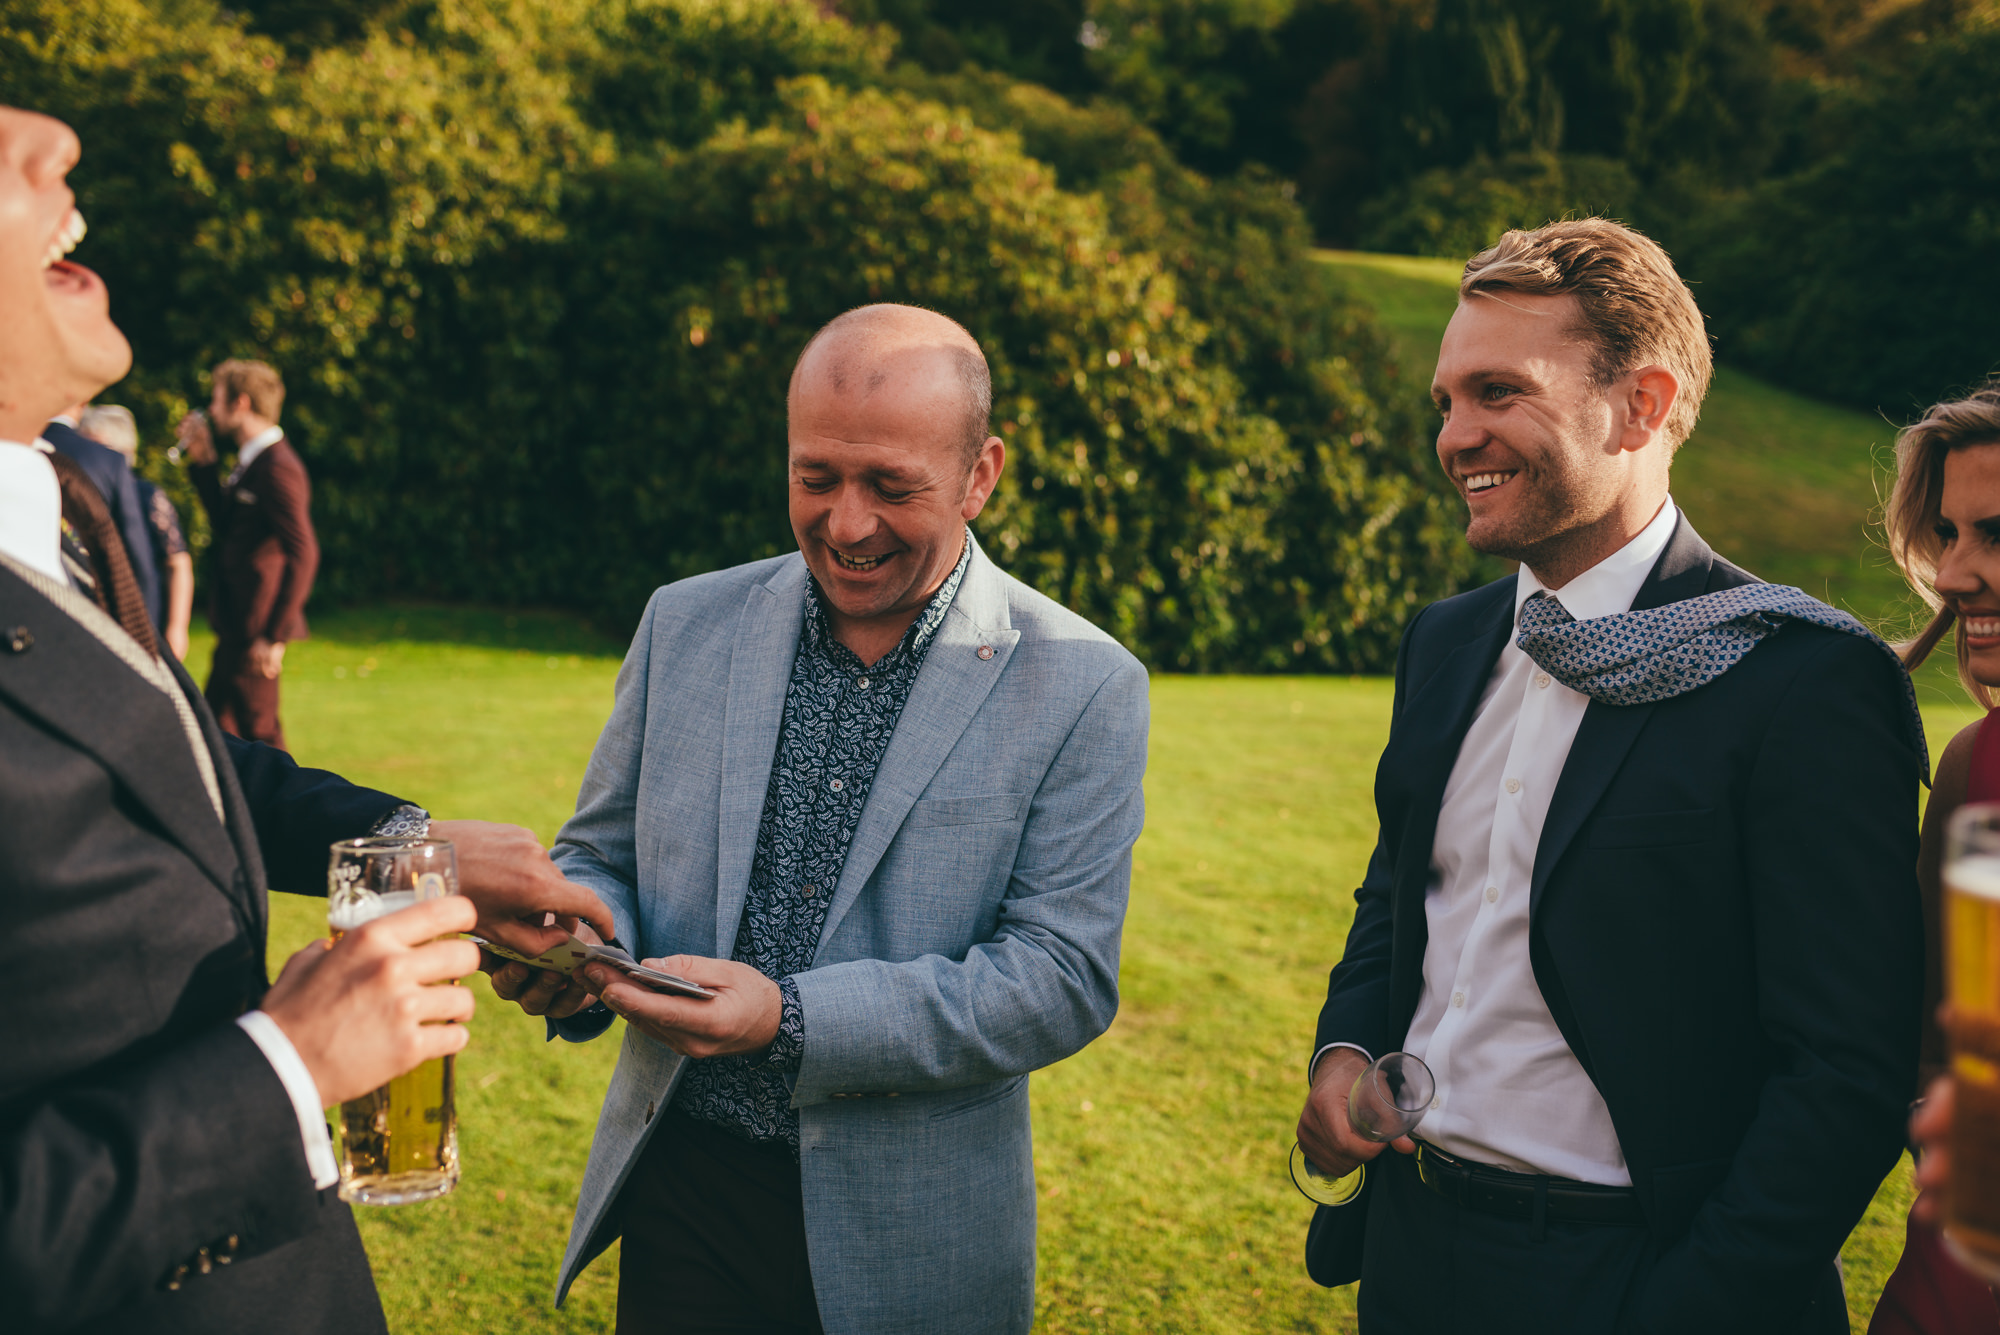 magician doing card tricks with the groom